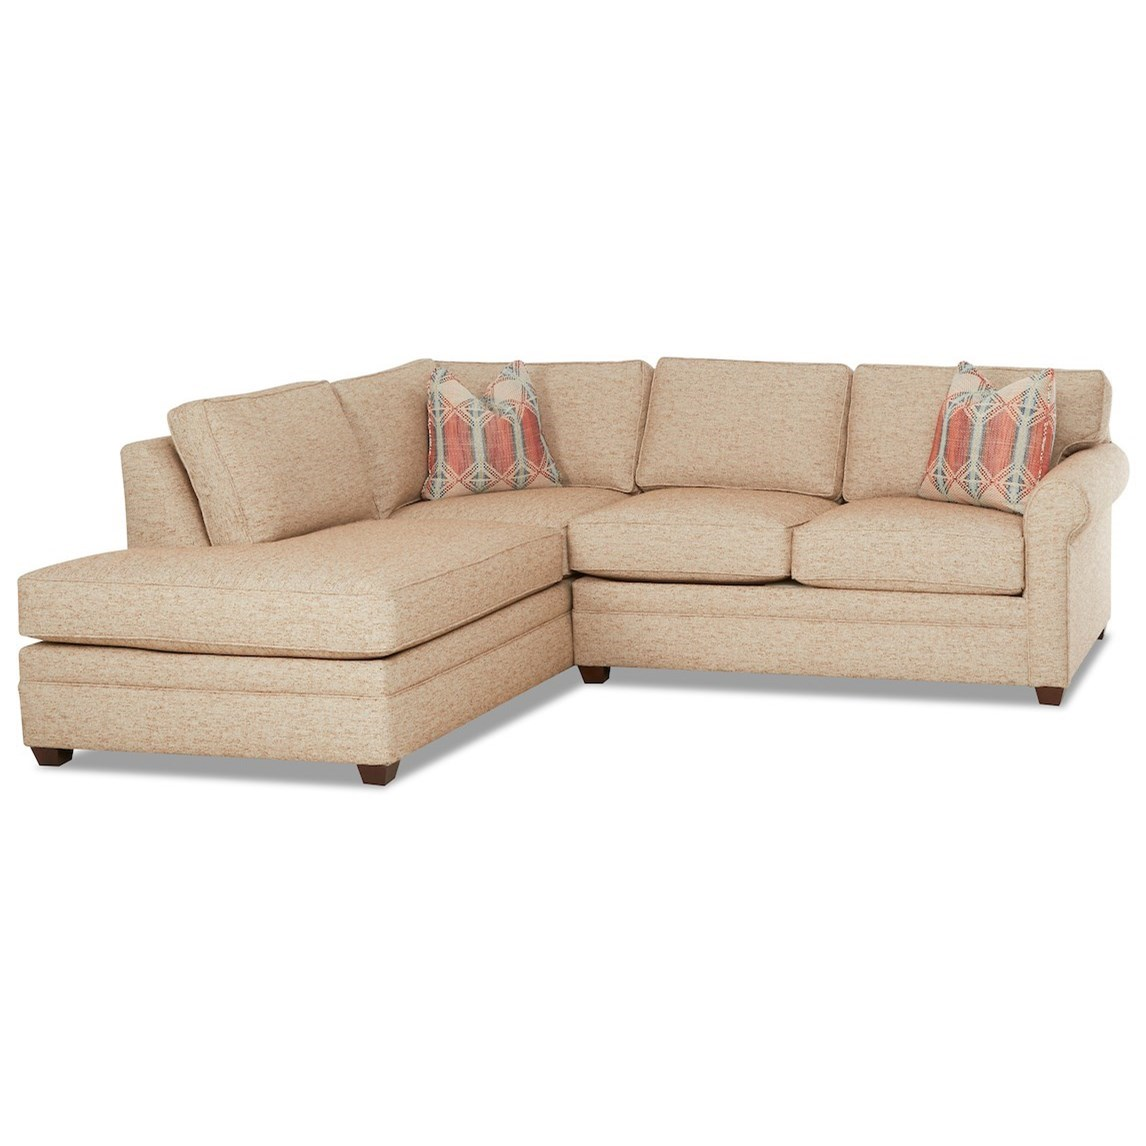 Living Your Way 2-Piece Sectional Sofa w/ LAF Sofa Chaise by Klaussner at Johnny Janosik